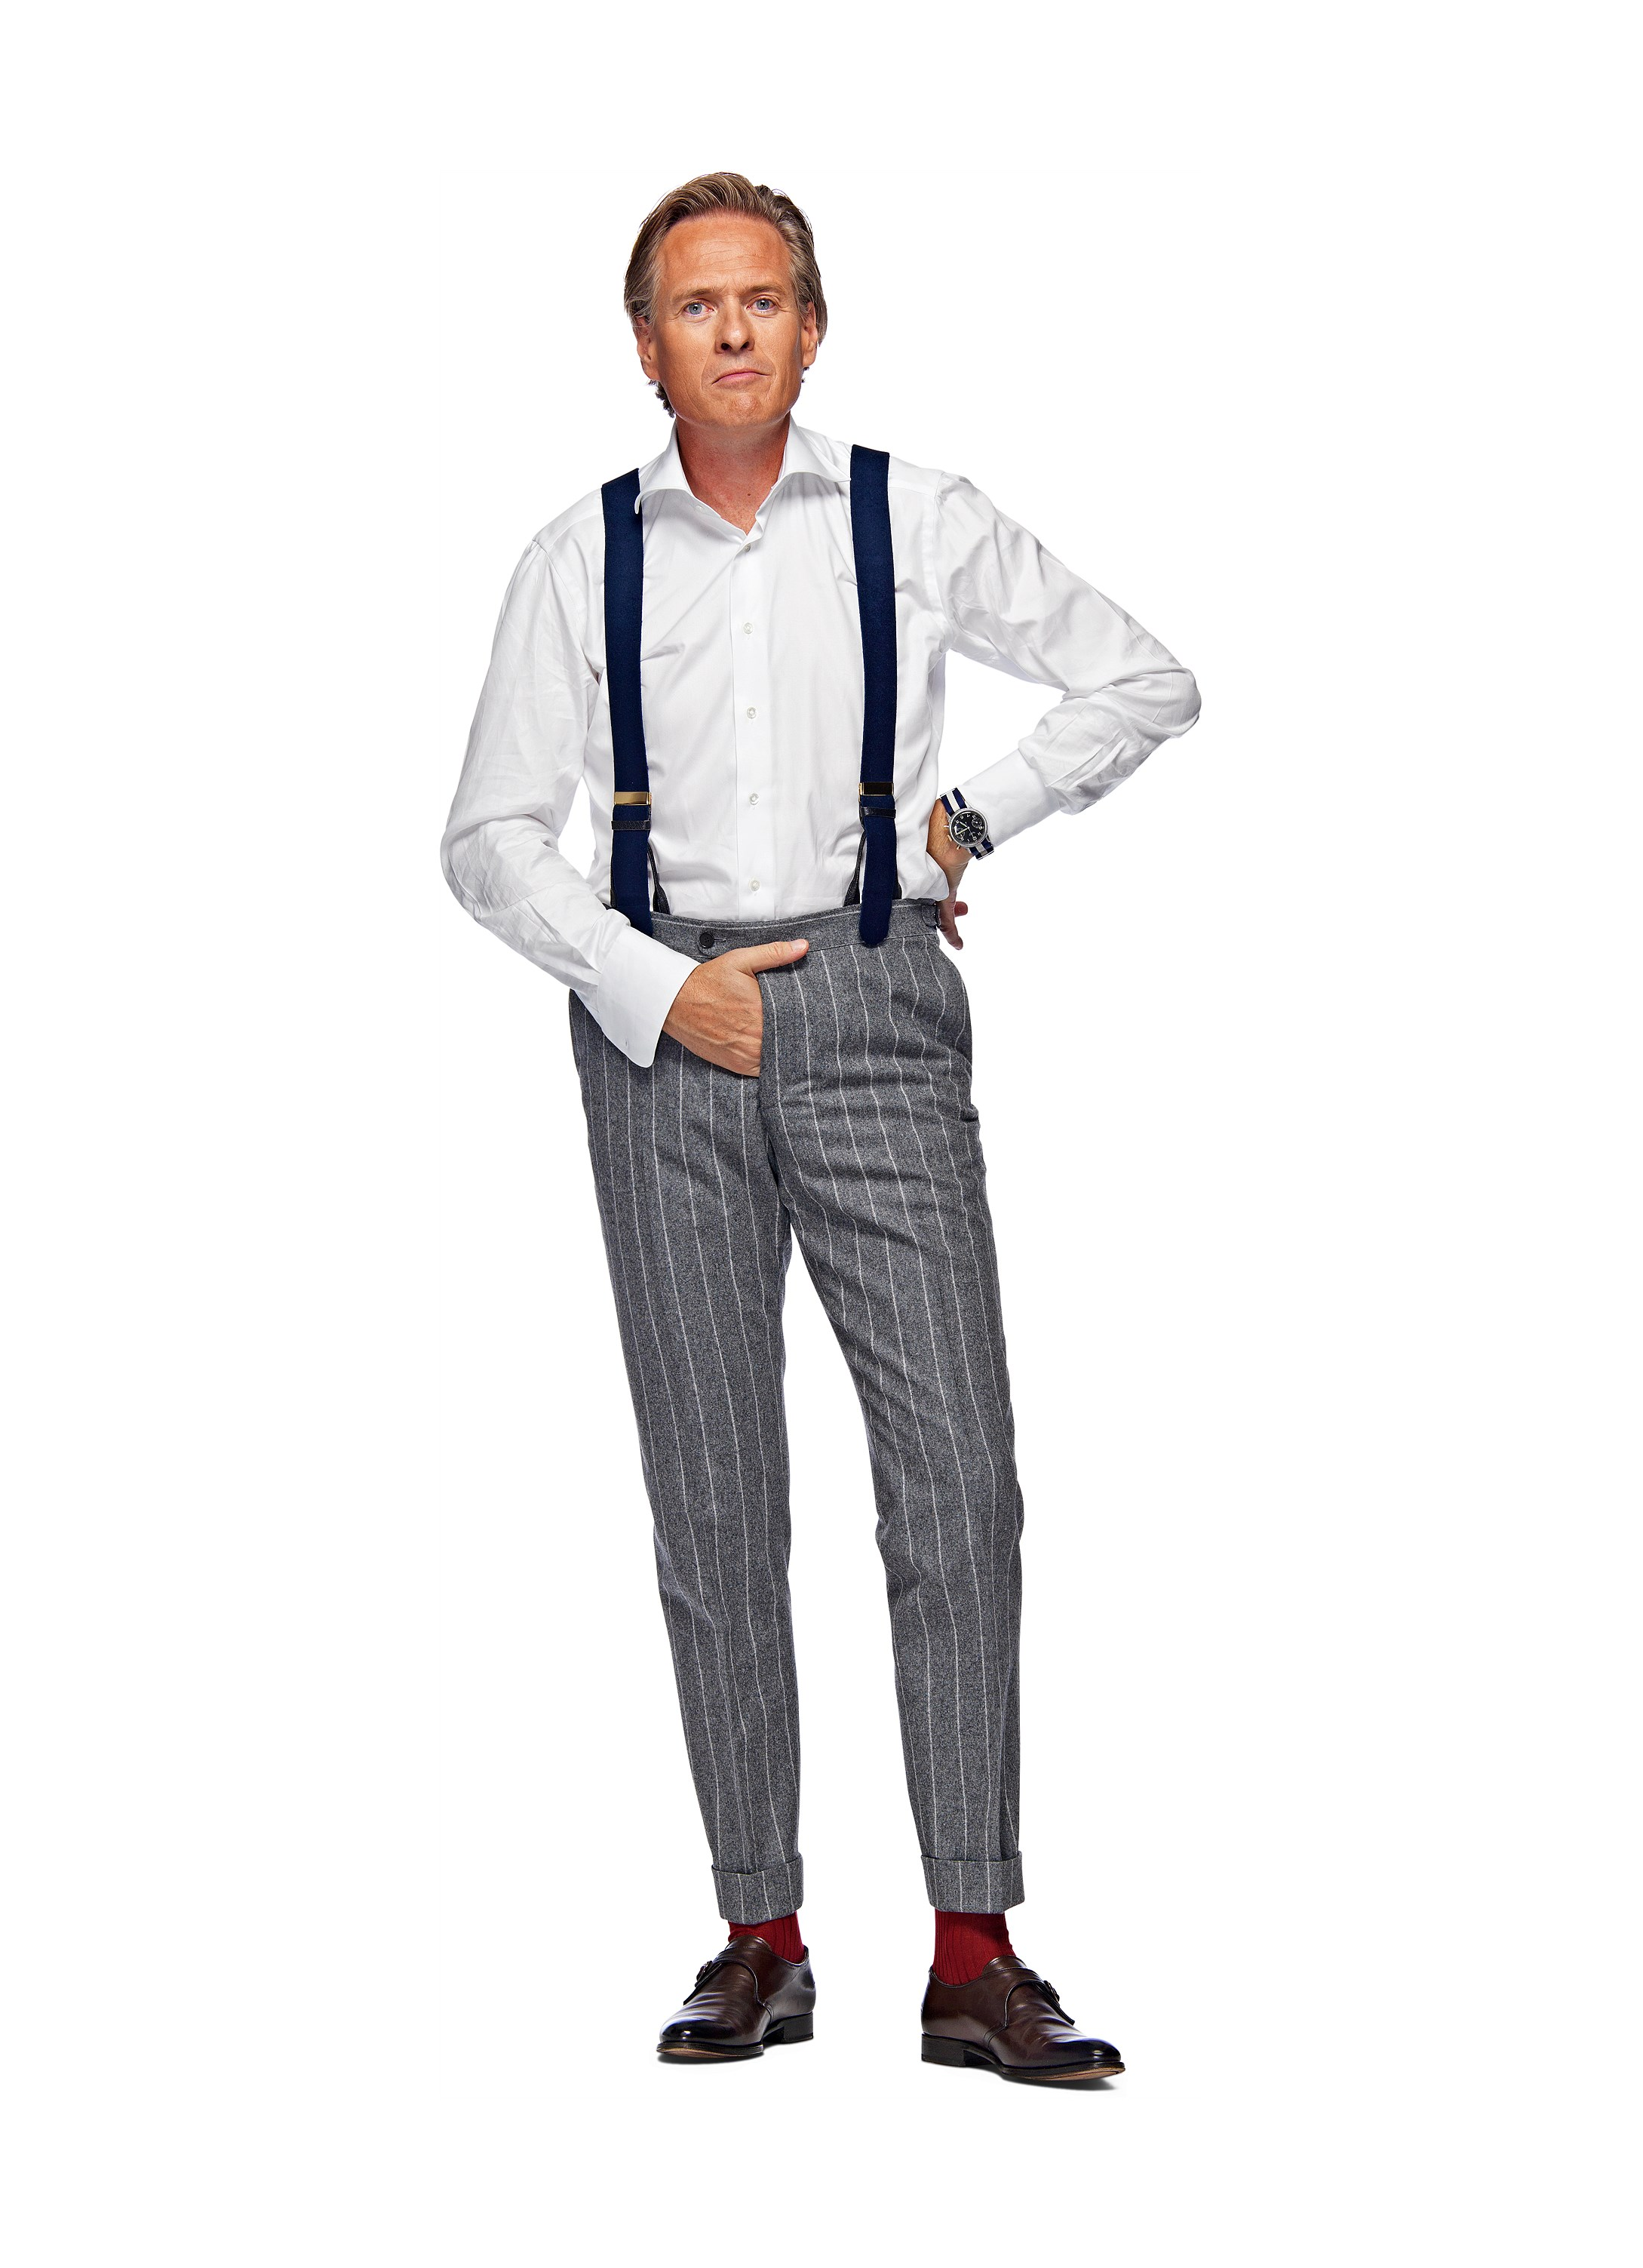 http://statics.suitsupply.com/images/products/Suits/zoom/Suits_Grey_Stripe_Madison_P3774_Suitsupply_Online_Store_6.jpg